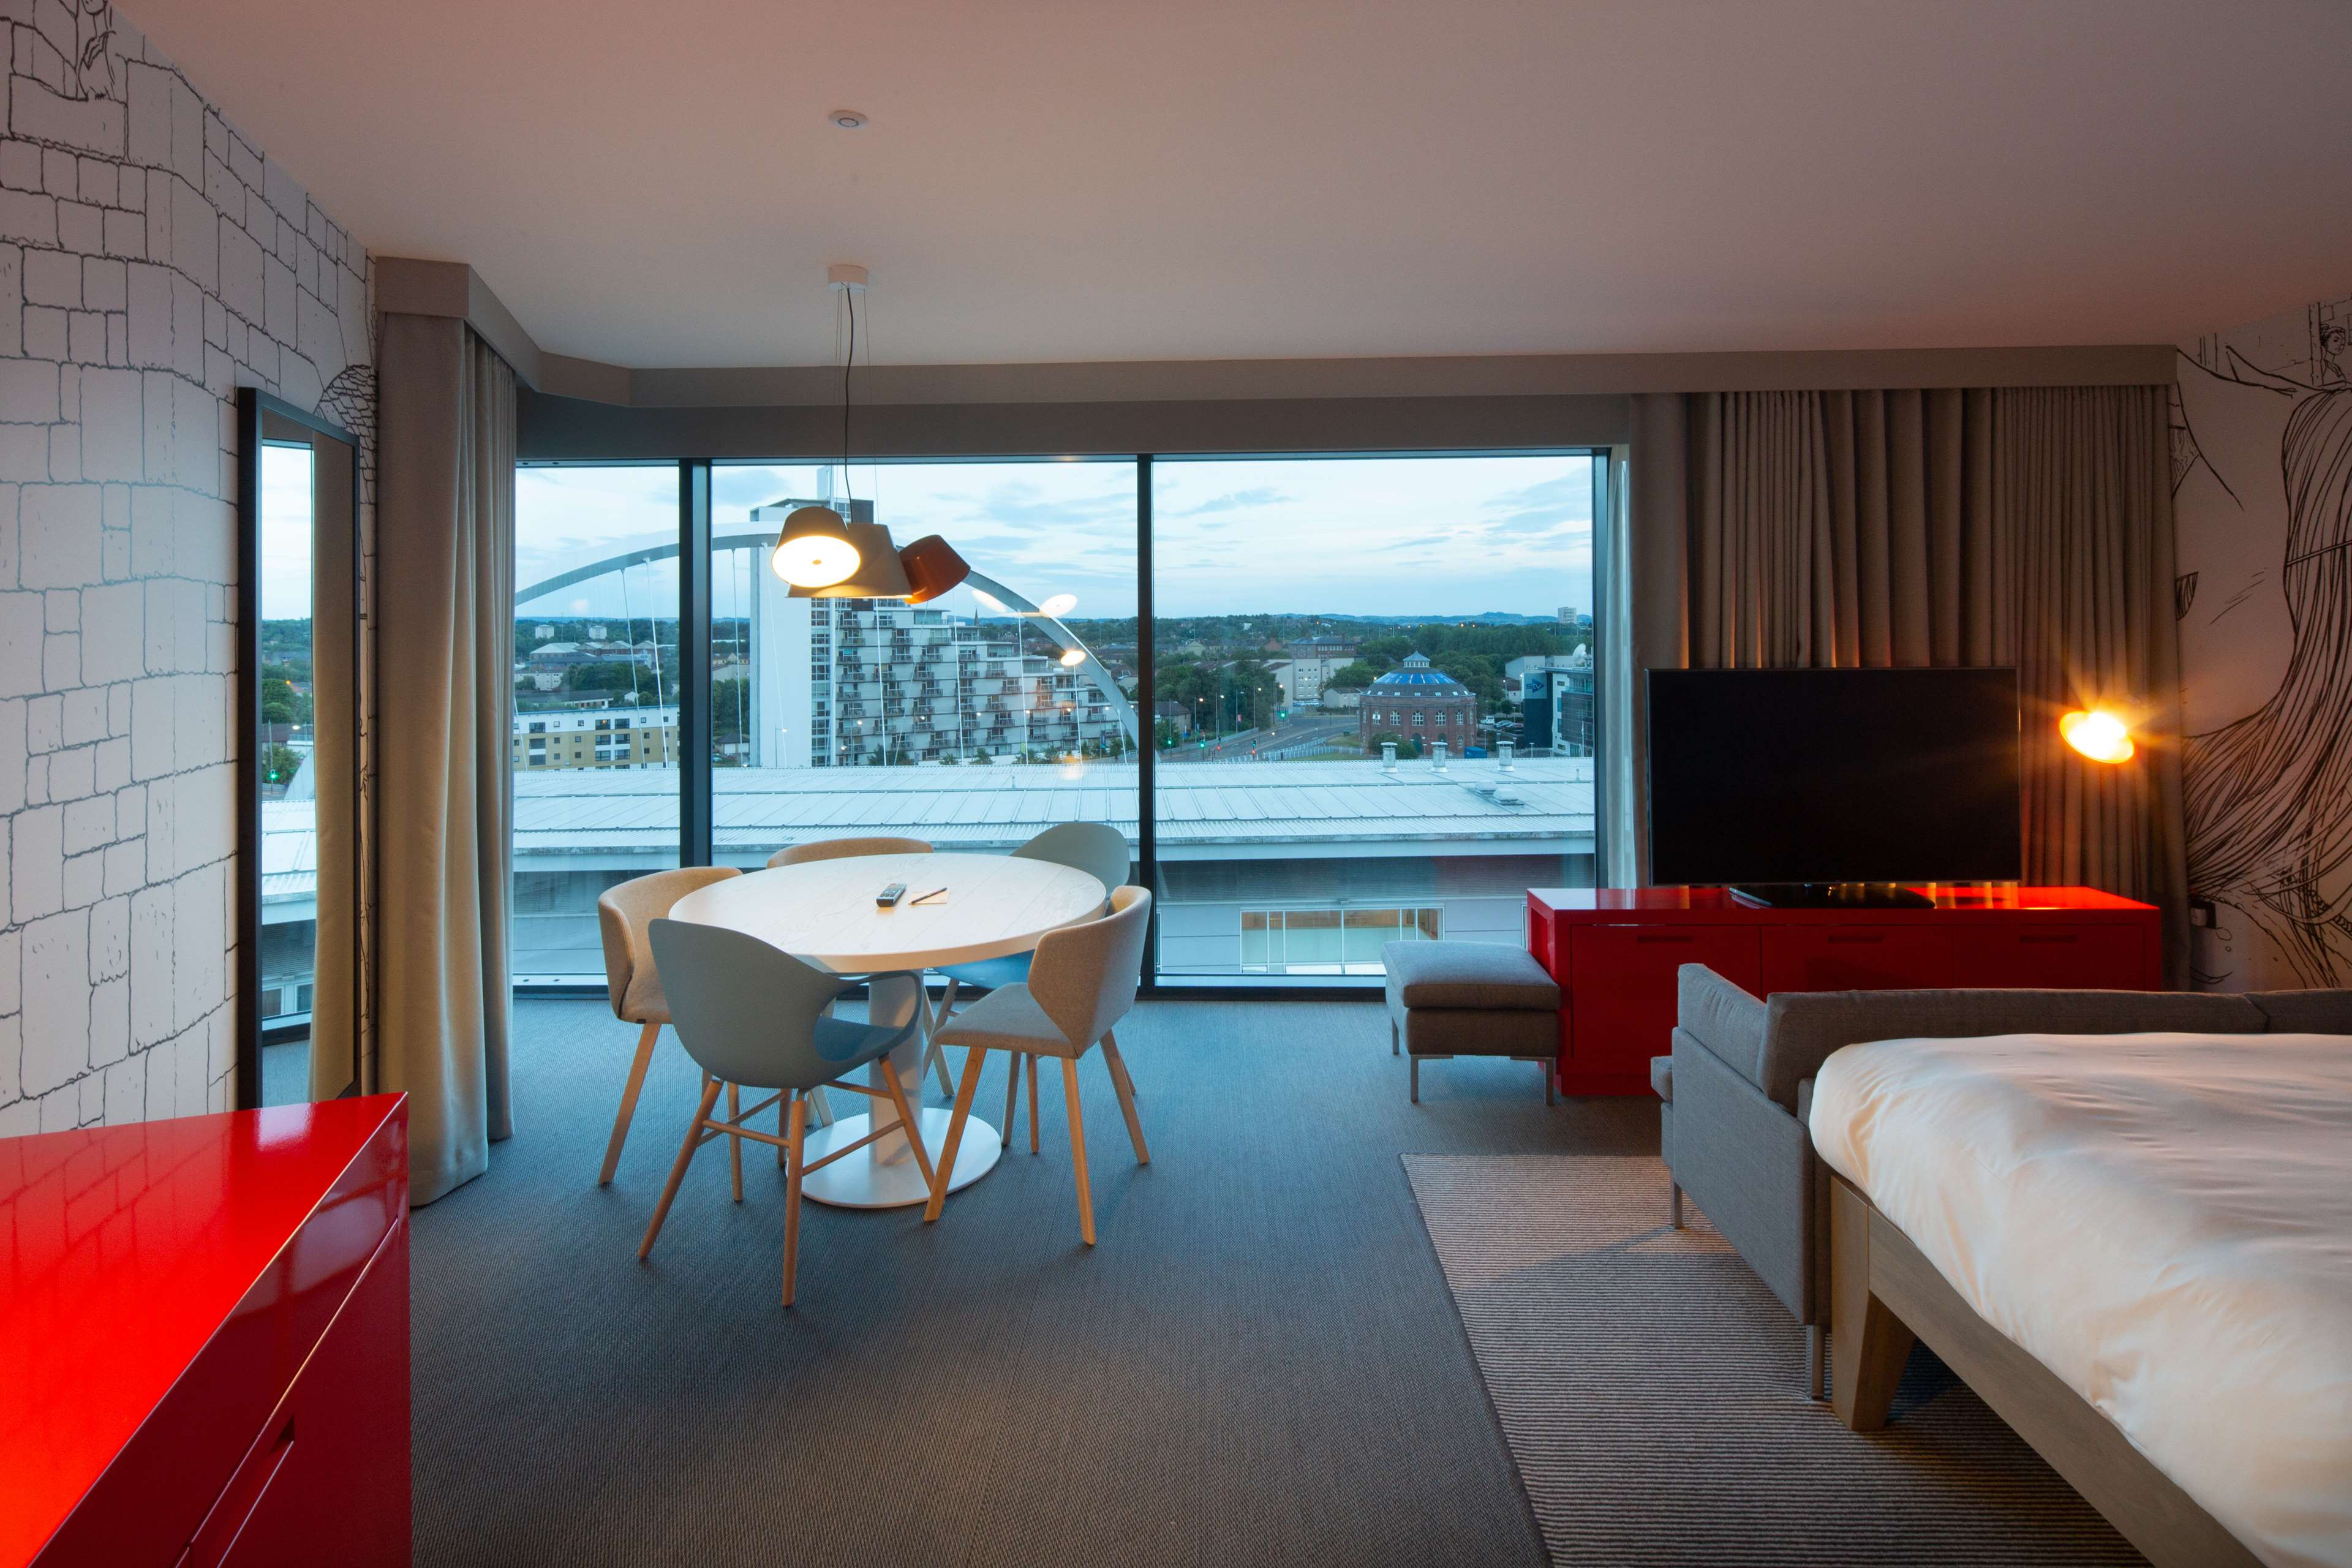 Images Radisson RED Glasgow